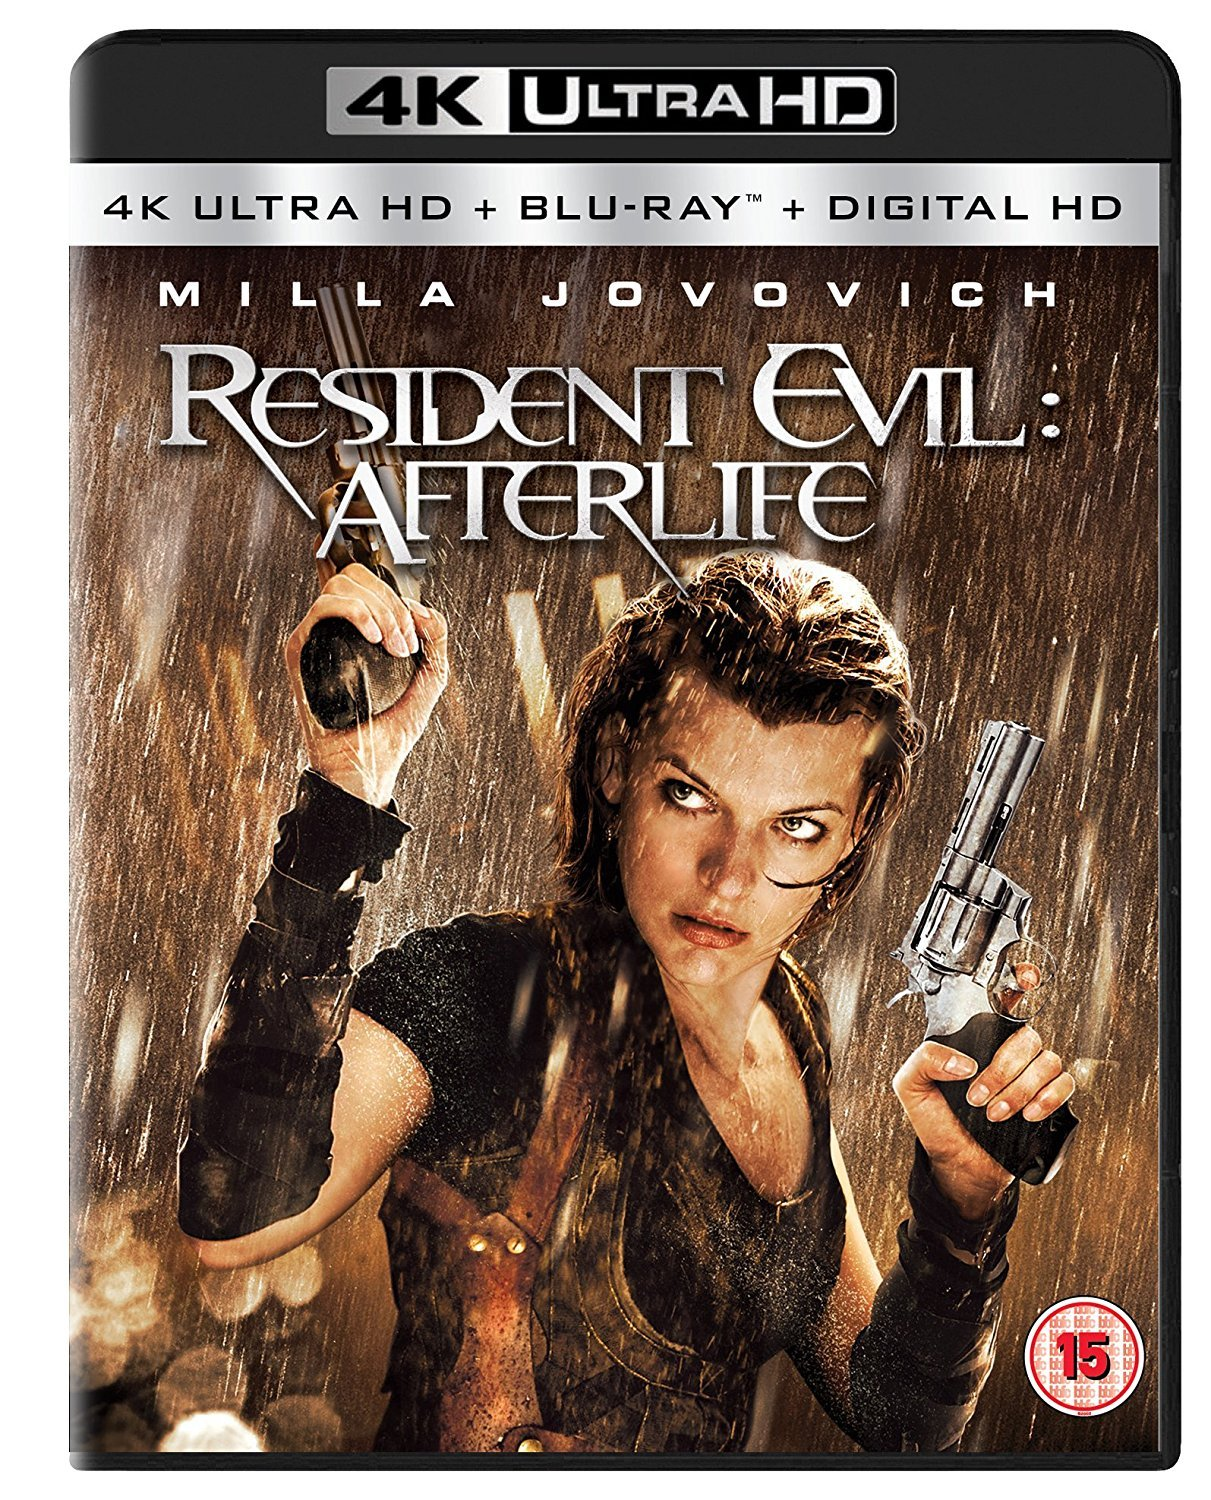 Amazon Com Resident Evil Afterlife 4k Ultra Hd Blu Ray Milla Jovovich Ali Larter Kim Coates Shawn Roberts Sergio Peris Mencheta Paul W S Anderson Movies Tv